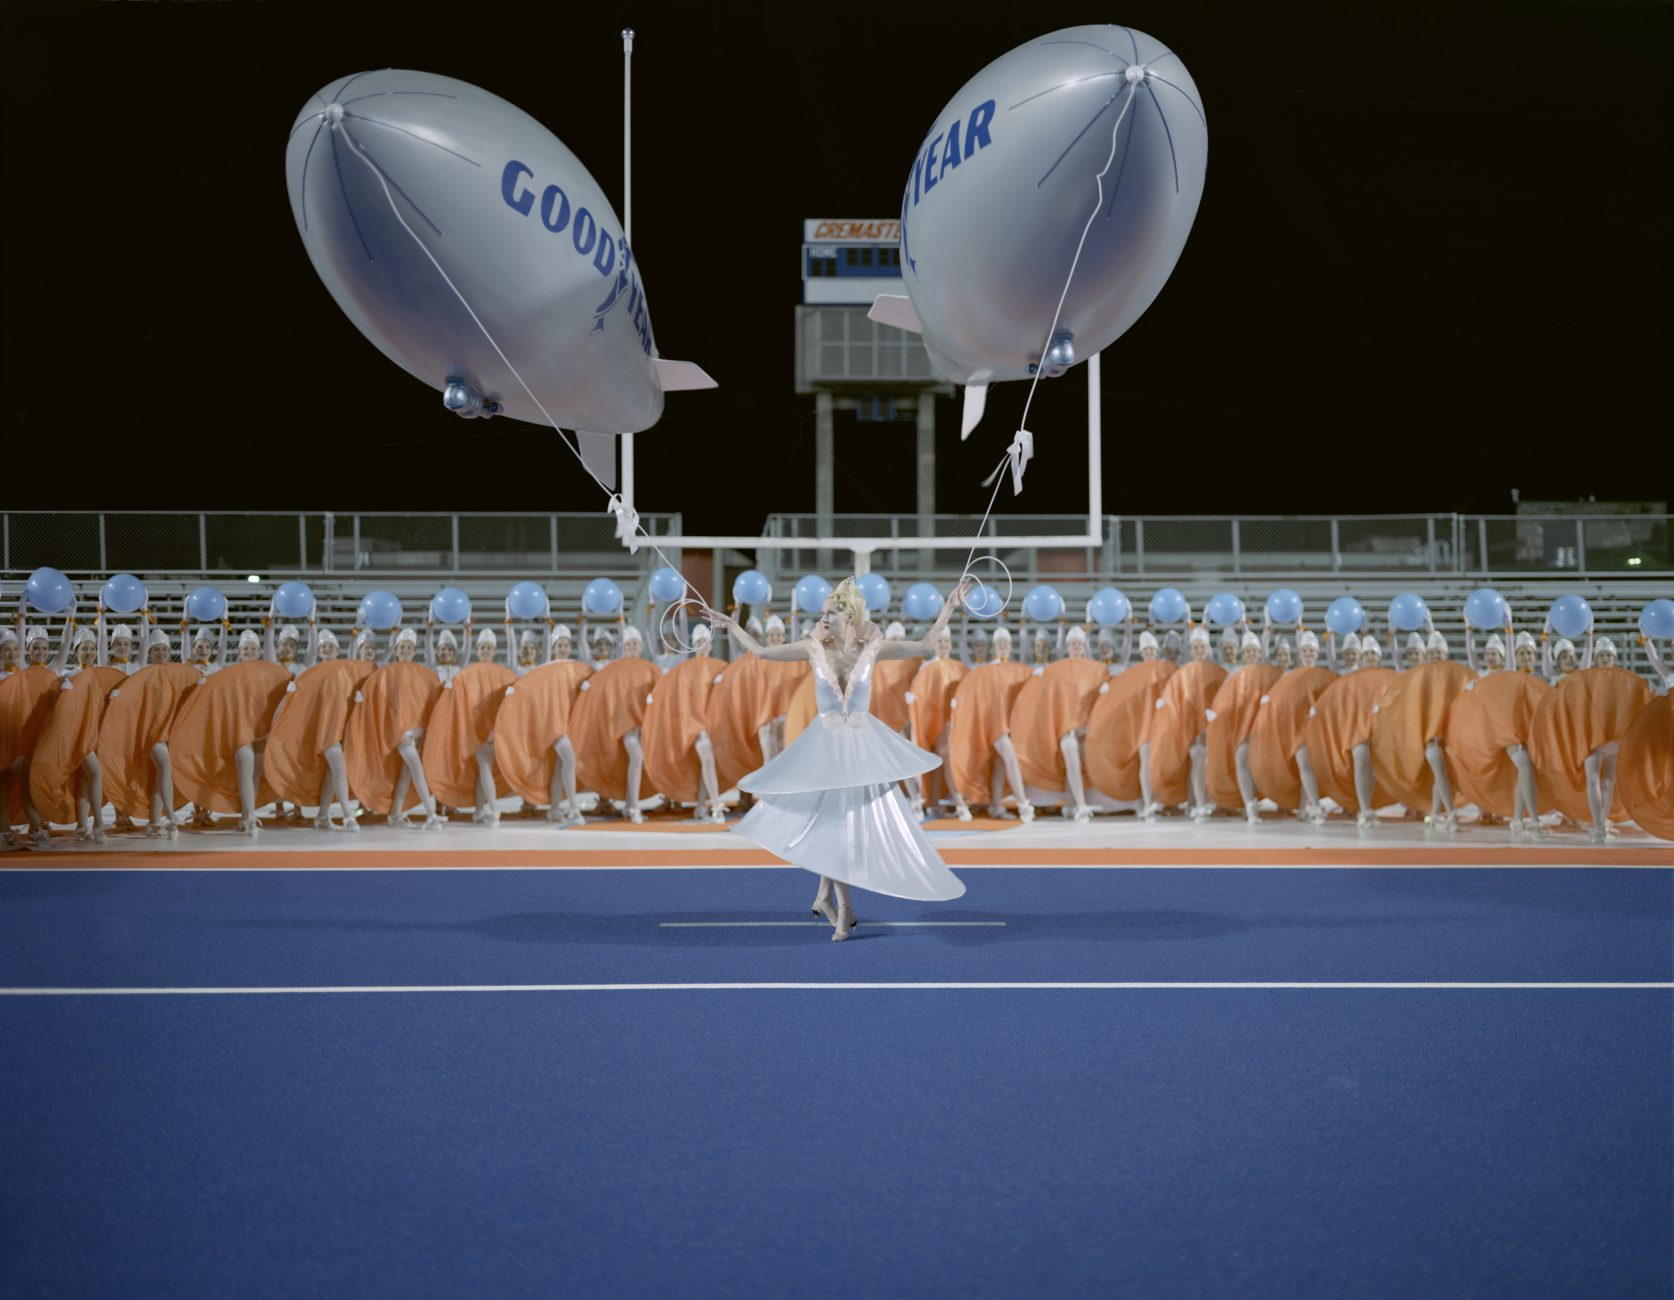 A woman in a retro-futuristic dress stands in a sporting arena, holding two miniature Goodyear blimps by their strings. Behind her, a crowd wearing orange circles watches on